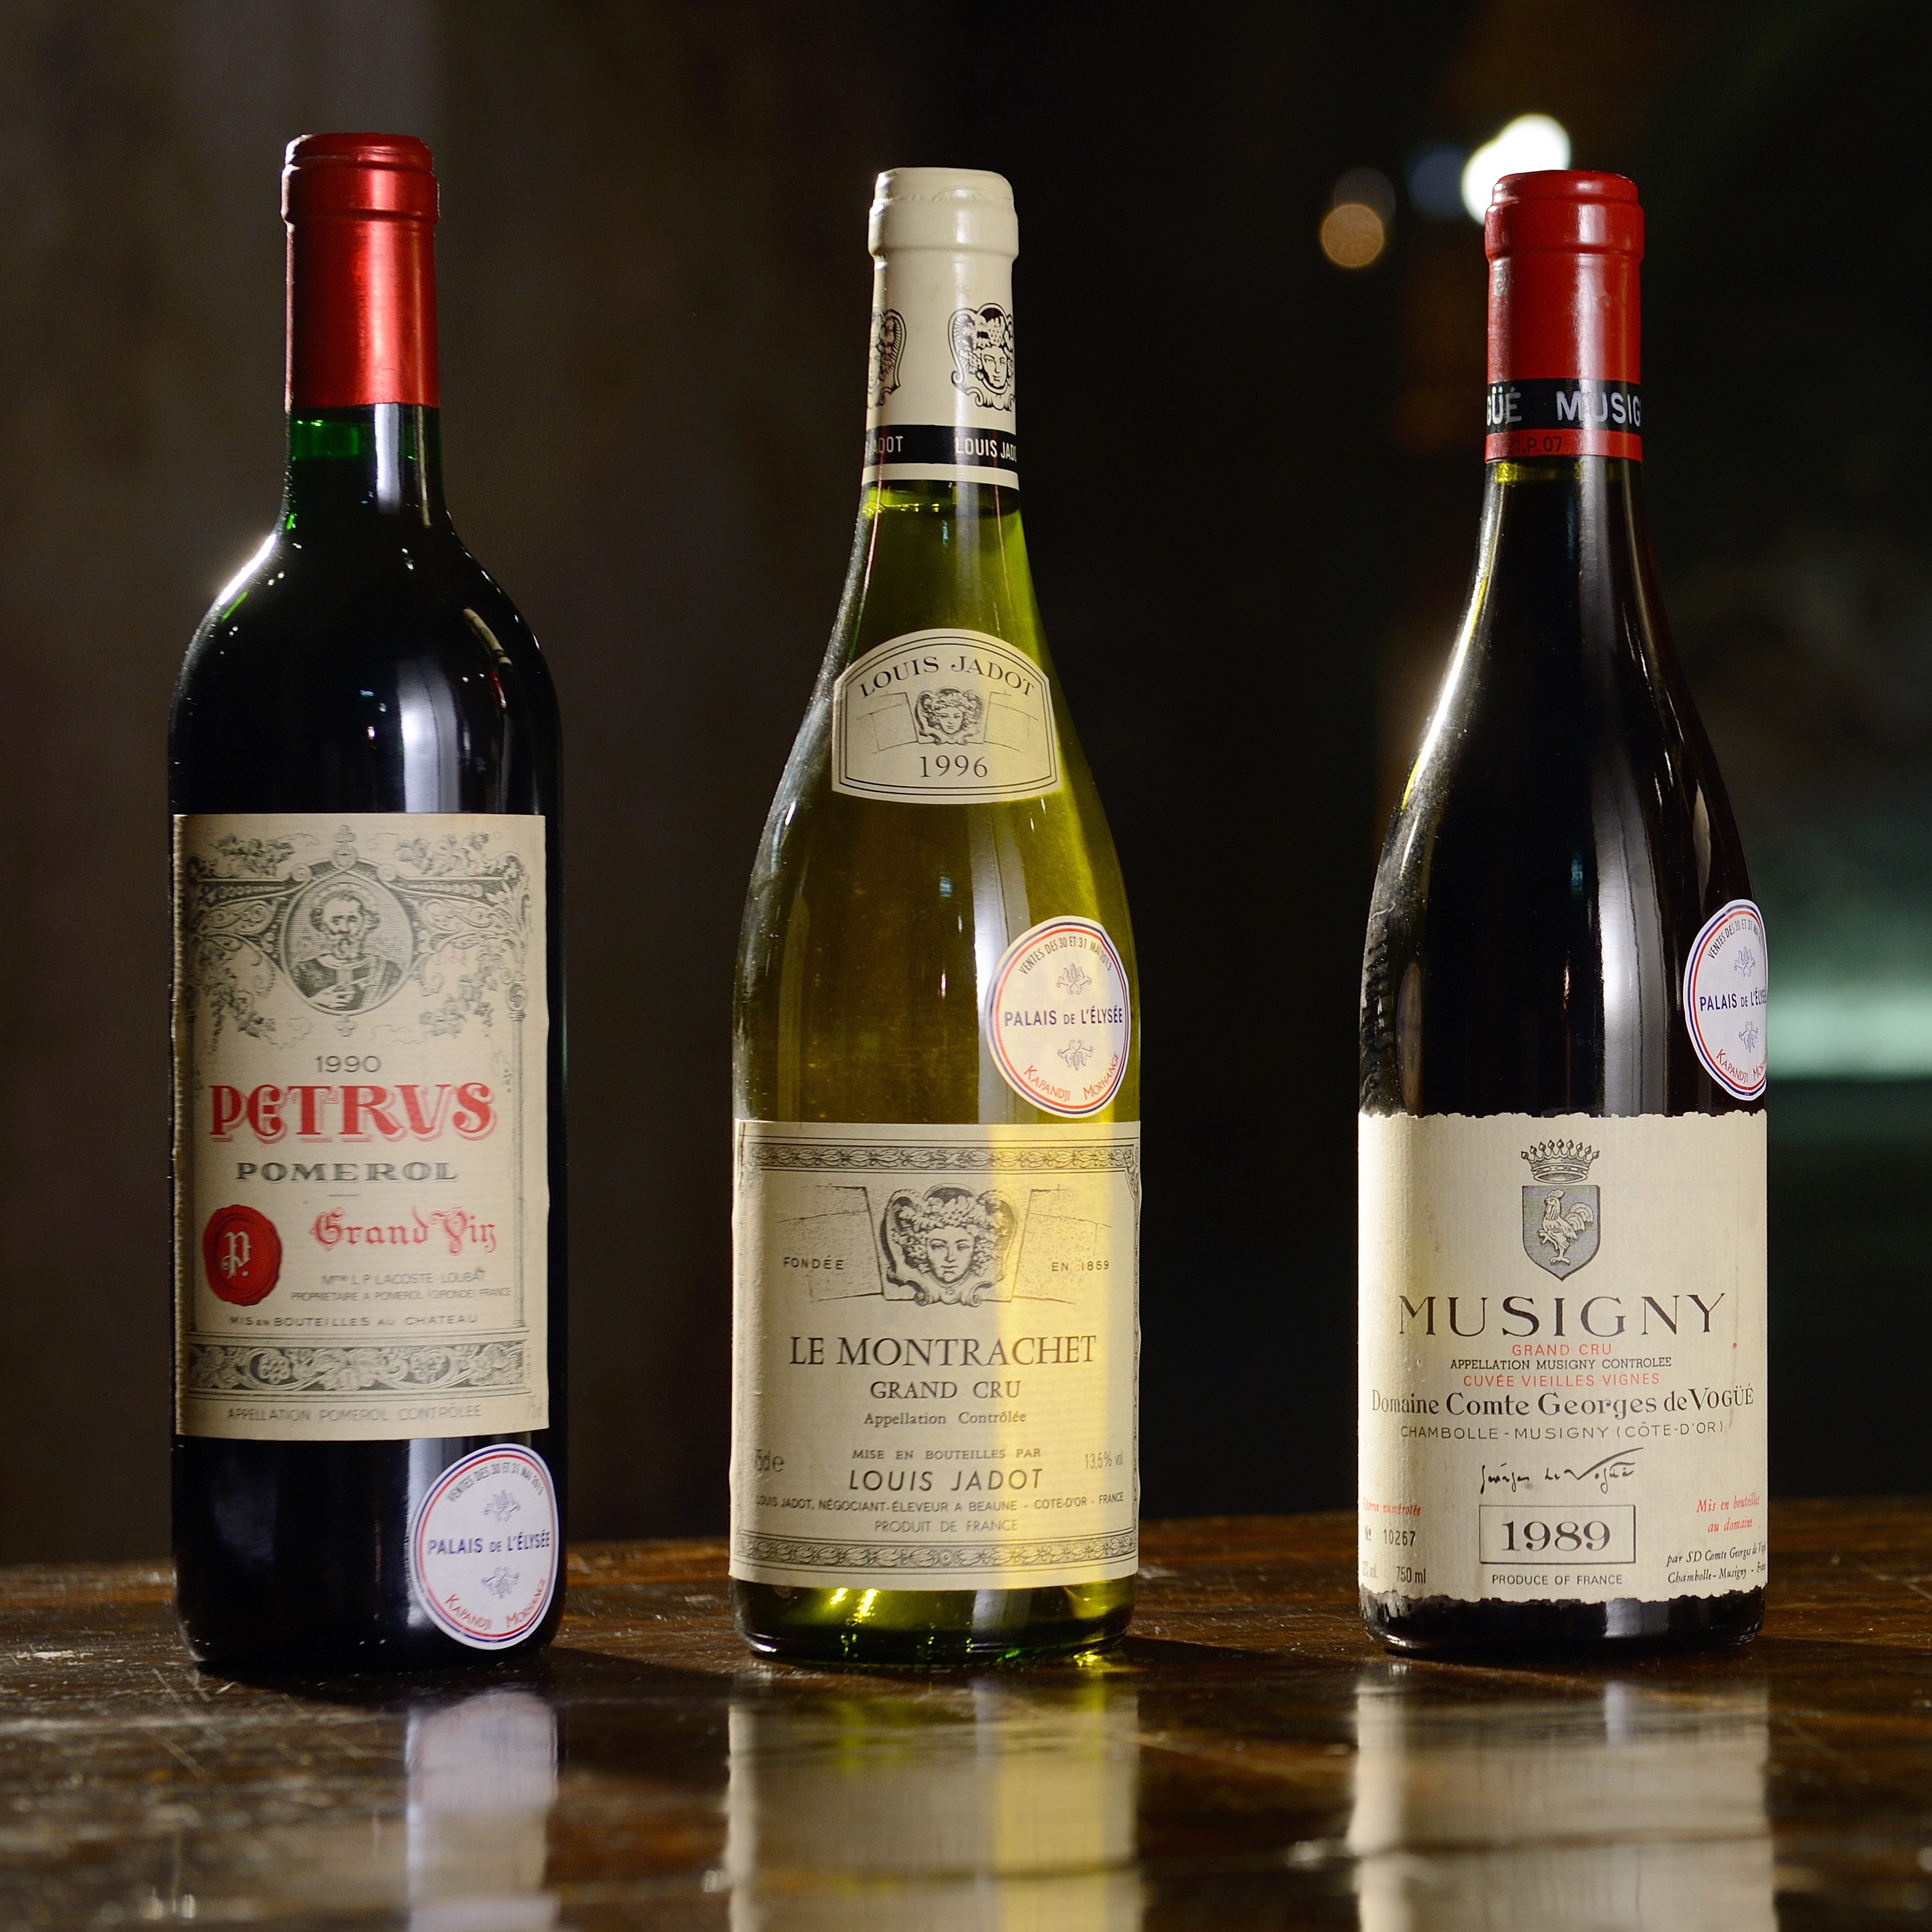 A picture taken on May 30, 2013 shows some bottles of the finest wine from the cellars of the Elysee Palace (from left), a 1990 Bordeaux's Chateau Petrus, a 1996 Le Montrachet Grand Cru, a 1989 Musigny Grand Cru, a 1985 La Romanee and a bottle of 1986 Chateau d'Yquem of 1986, to be sold during an auction in Paris.